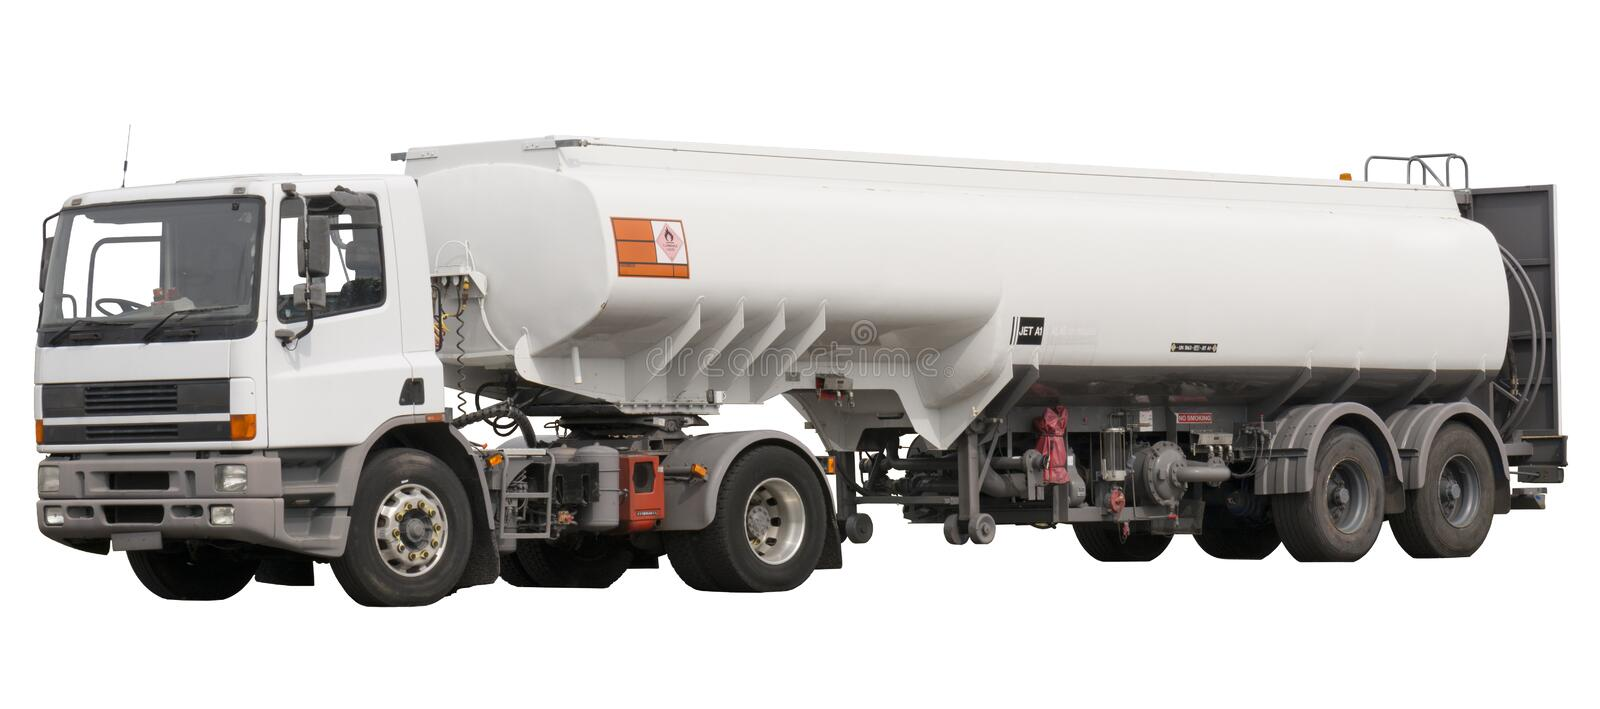 Fuel truck stock photography